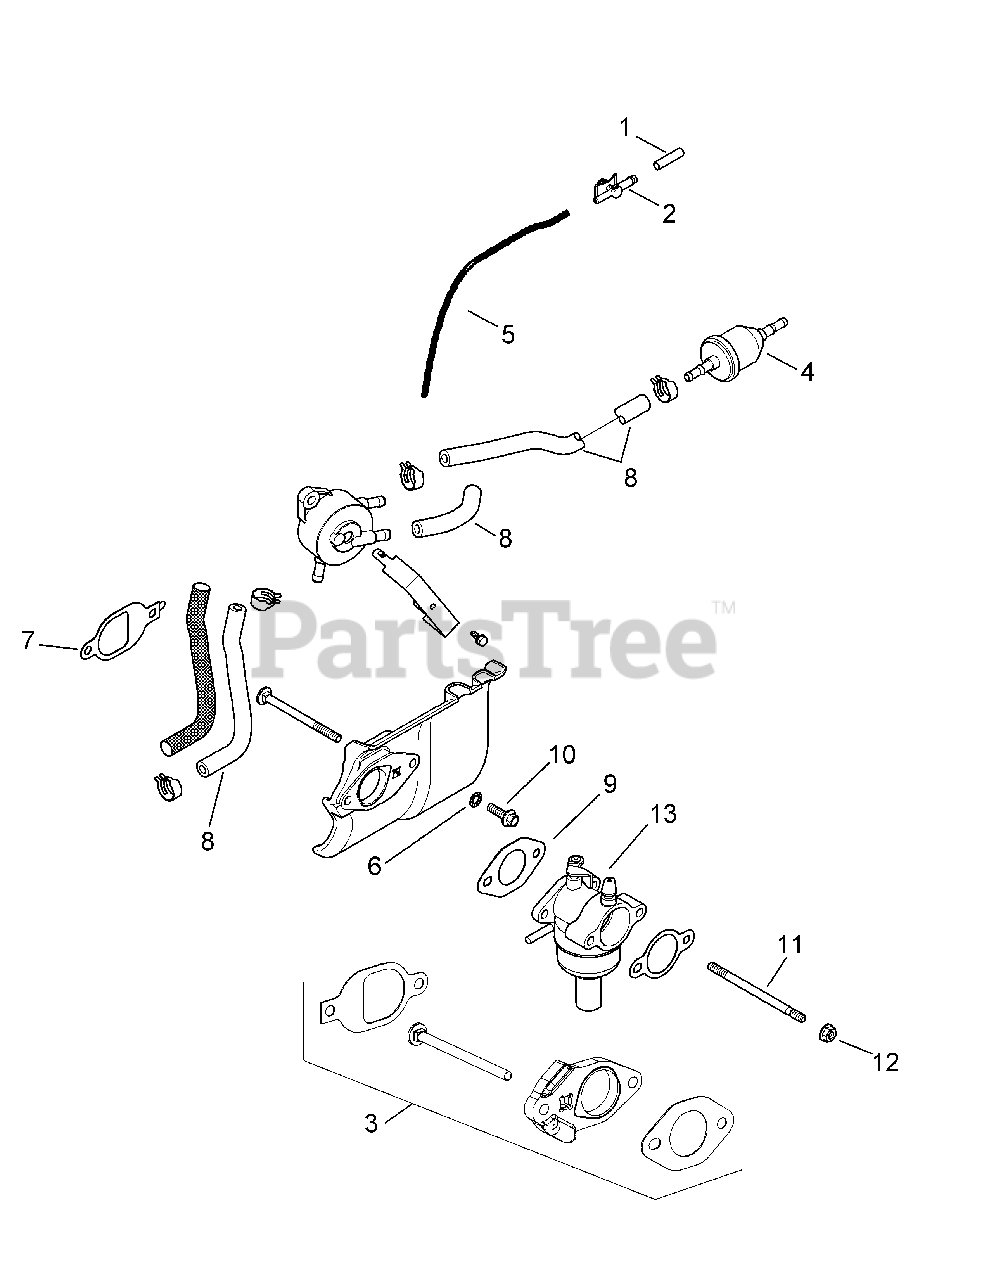 Cub Cadet Parts On The Kohler Sv541-3212 Fuel System Diagram For Xt1-lt 42  13ava1cs056